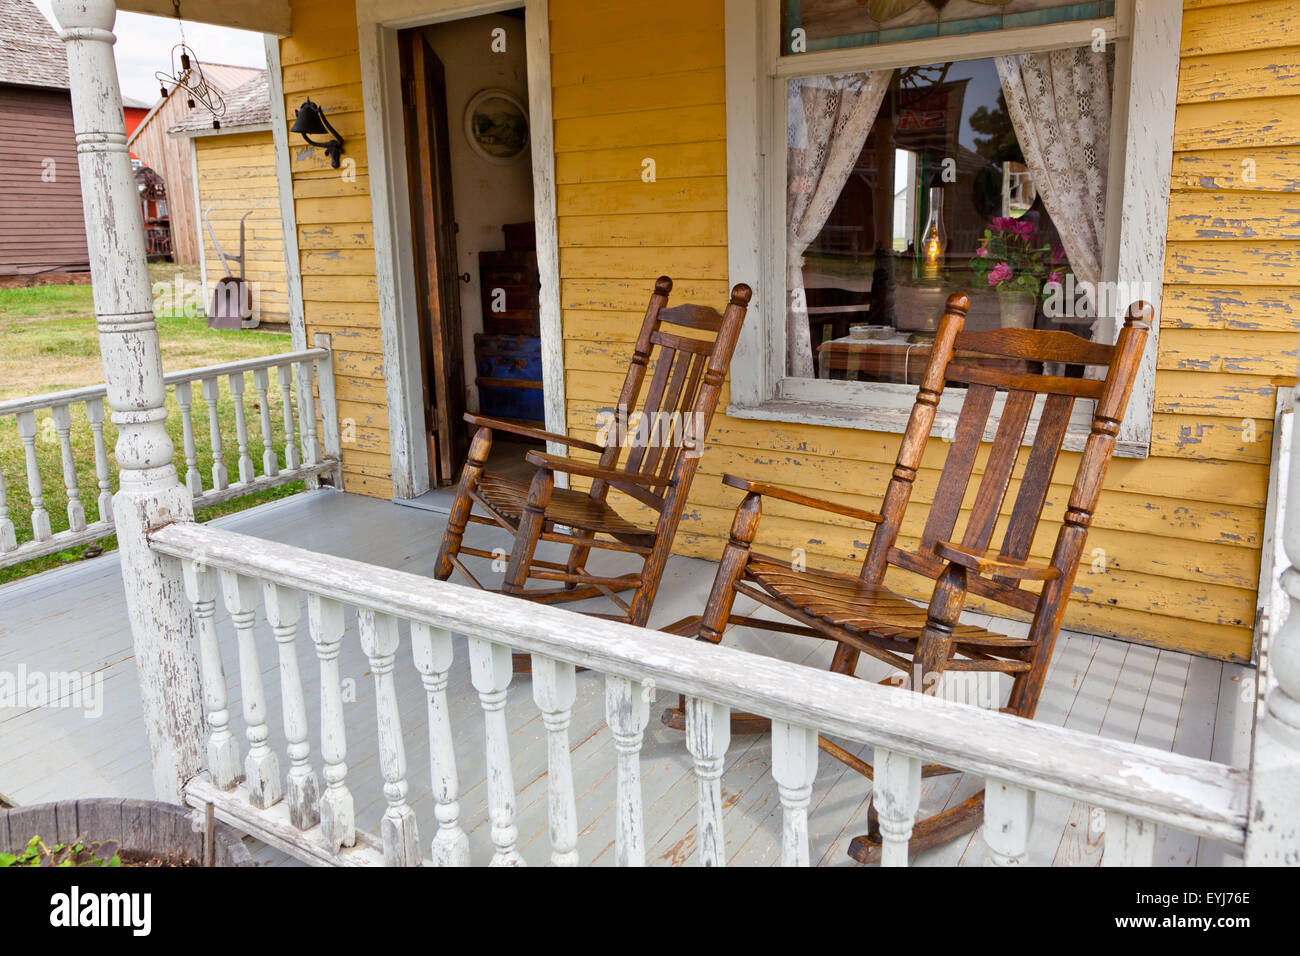 A pair of old wooden rocking chairs sit on the painted wooden porch of a faded yellow country house. Stock Photo